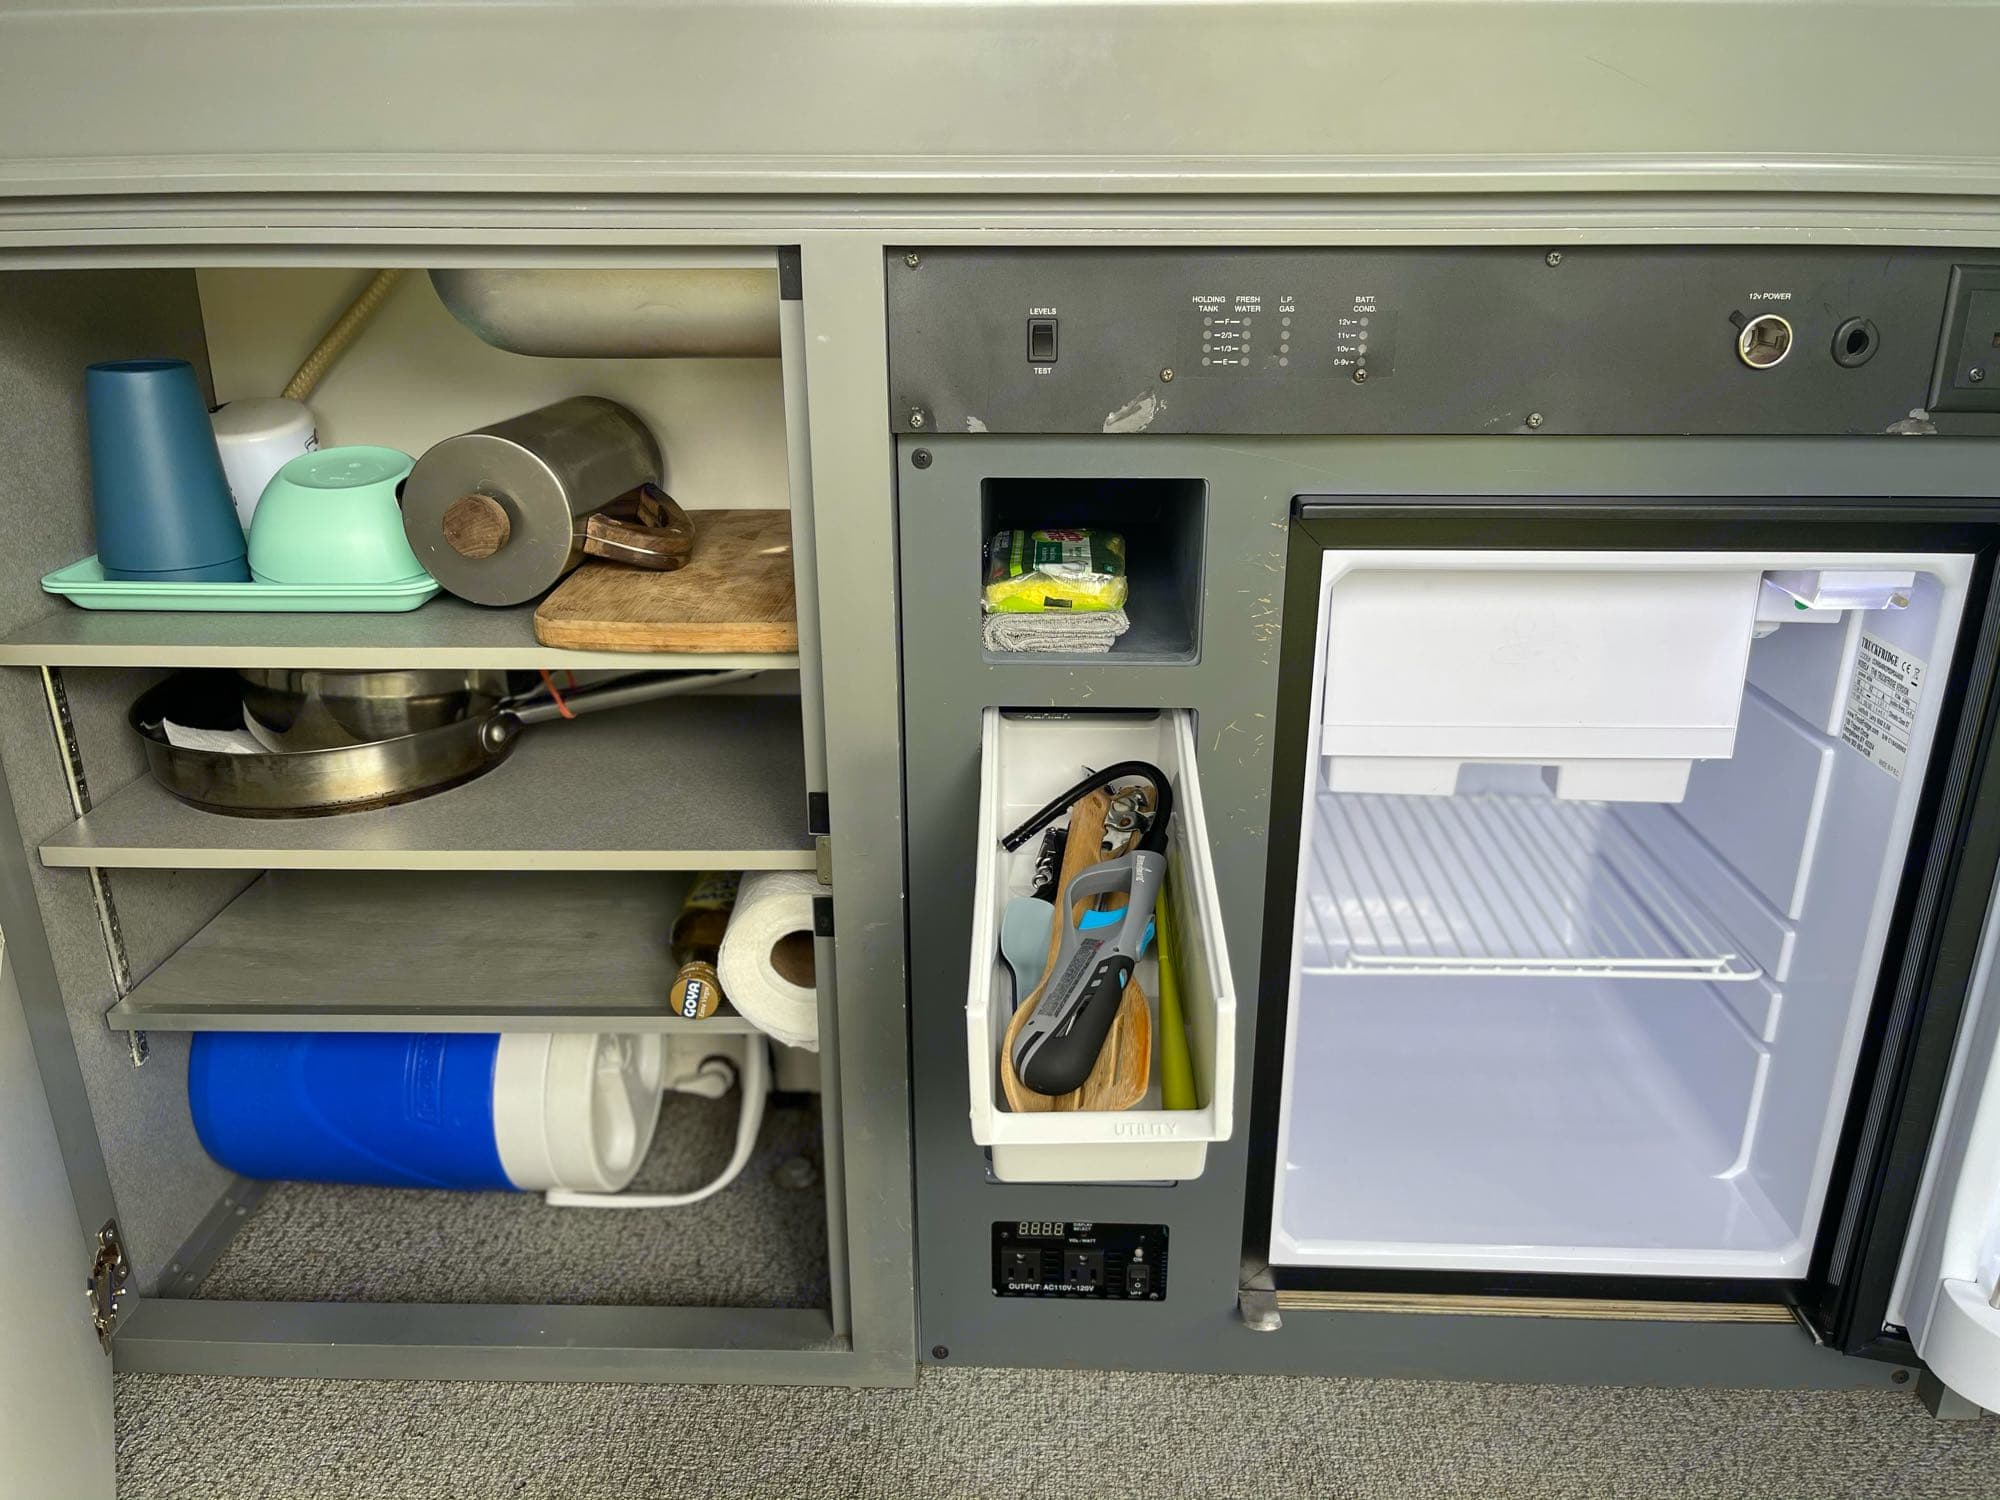 sushi van comes with bowls, plates, cups, coffee mugs, French press, cutting board, pot, pan, paper towels, water cooler, sponge, rag, soap, stove lighter, cooking utensils, eating utensils, a sharp pairing knife, wine bottle opener, and can opener.. Volkswagen Eurovan Full Camper 1997